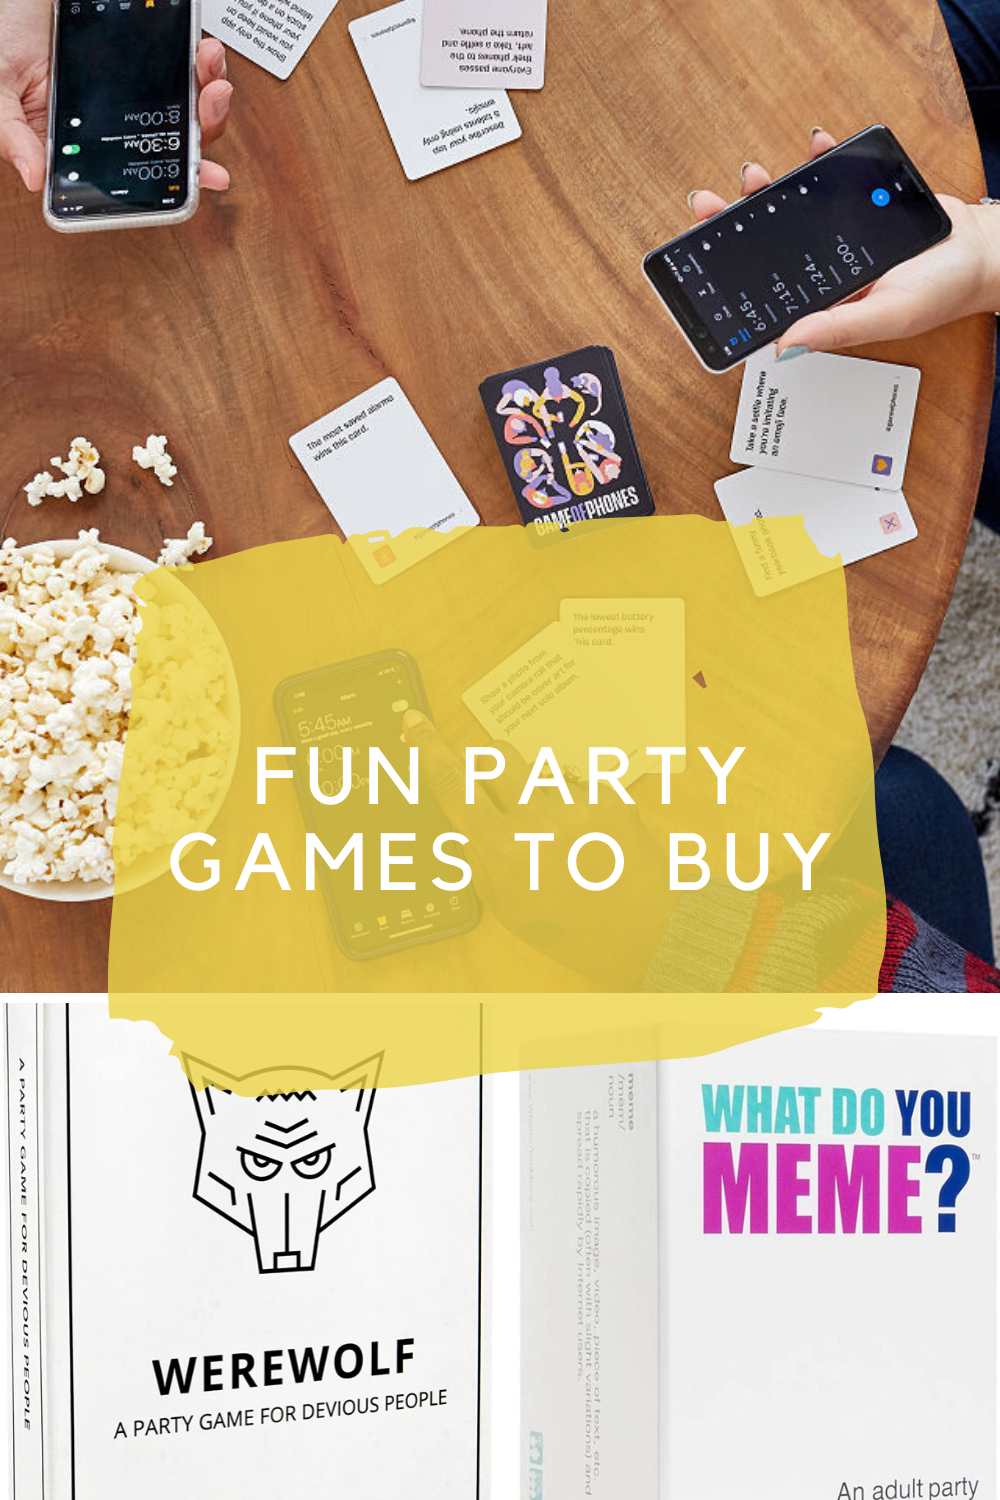 Fun Party Games to Buy